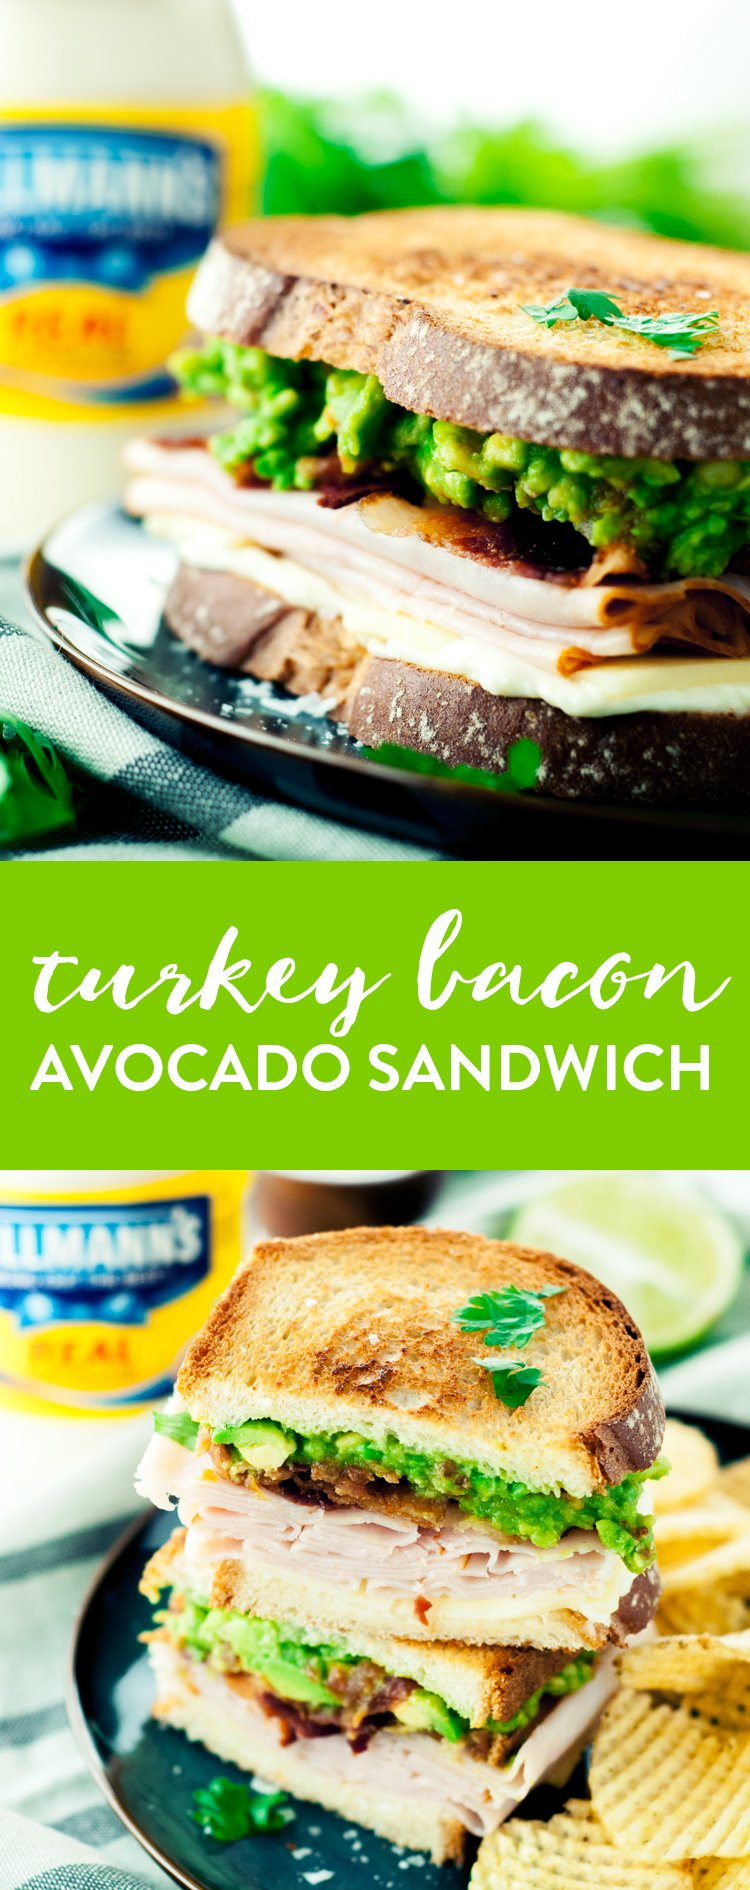 Get your lunch on with this amazingly delicious and simple Turkey Bacon Avocado Sandwich! Give it a fun twist with guacamole instead of traditional sliced avocado!   asimplepantry.com